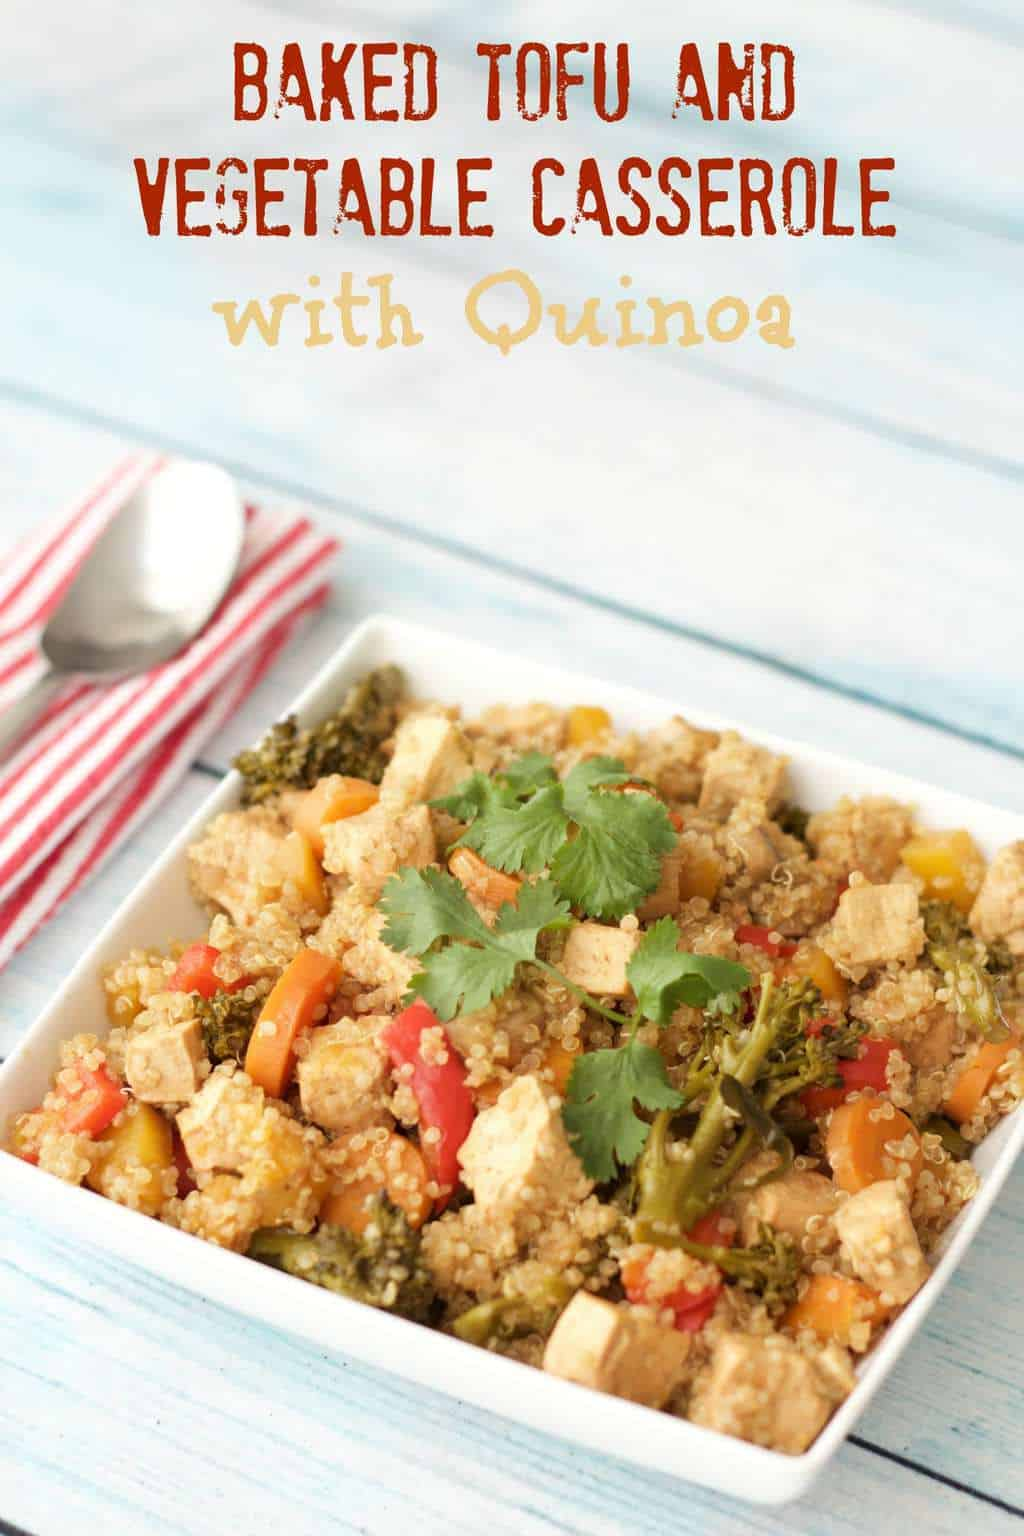 Baked Tofu and Vegetable Casserole with Quinoa #vegan #lovingitvegan #glutenfree #entree #dinner